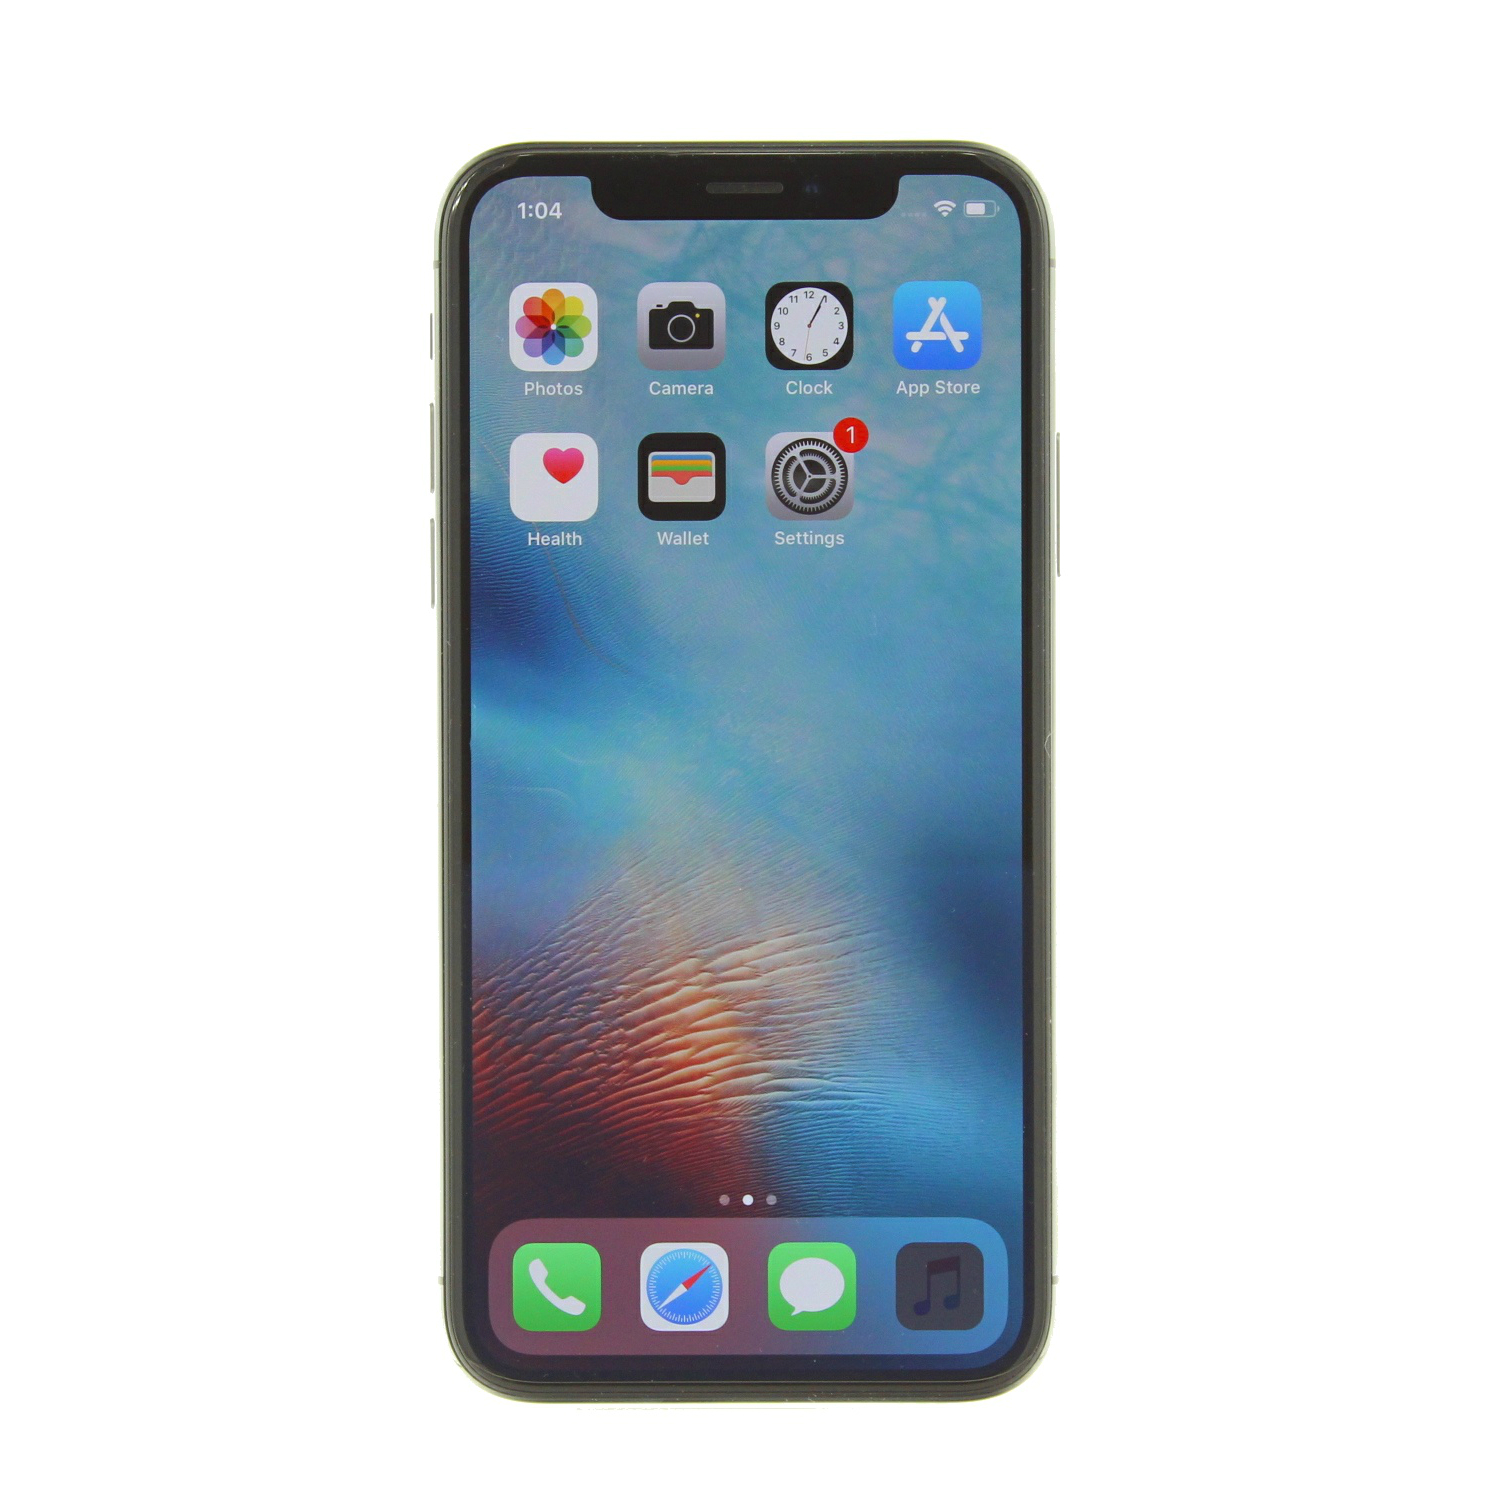 Apple iPhone X a1865 256GB LTE CDMA/GSM Unlocked - Excellent